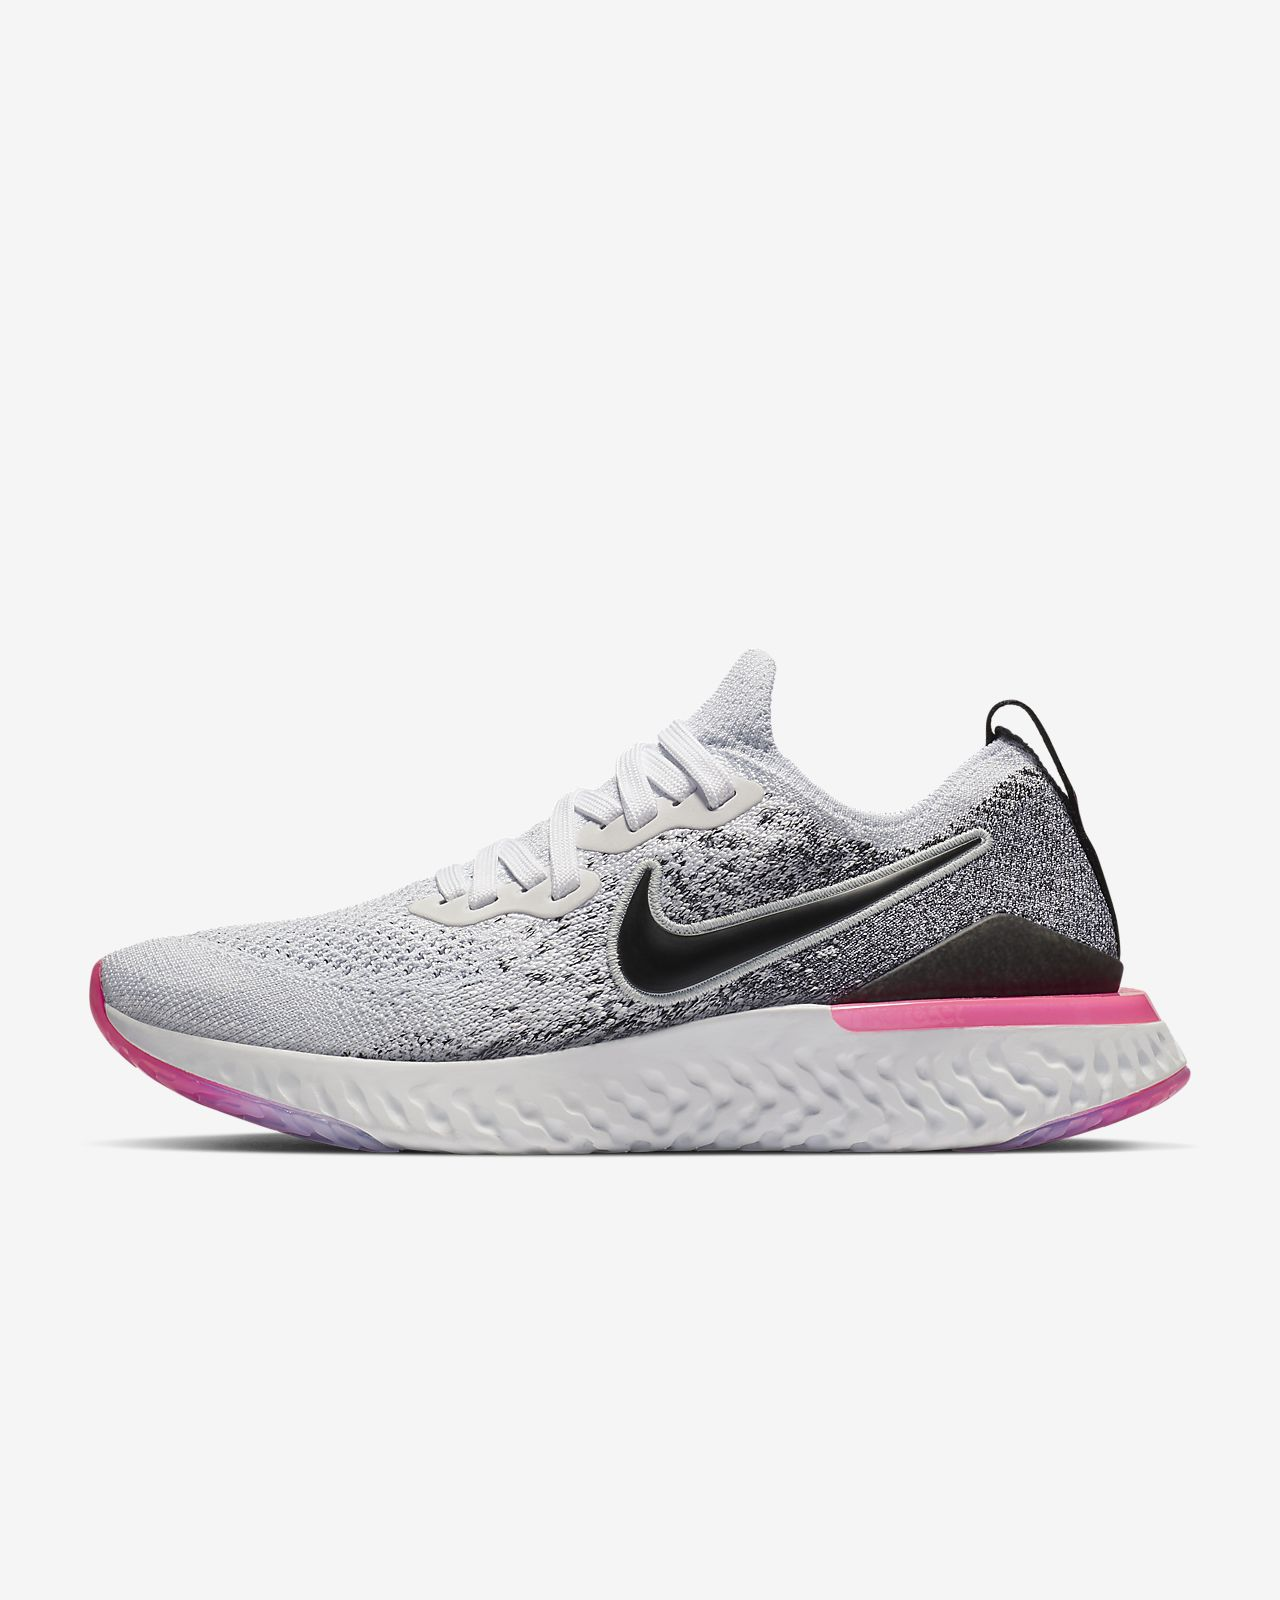 factory price 7a575 67419 ... Nike Epic React Flyknit 2 Damen-Laufschuh